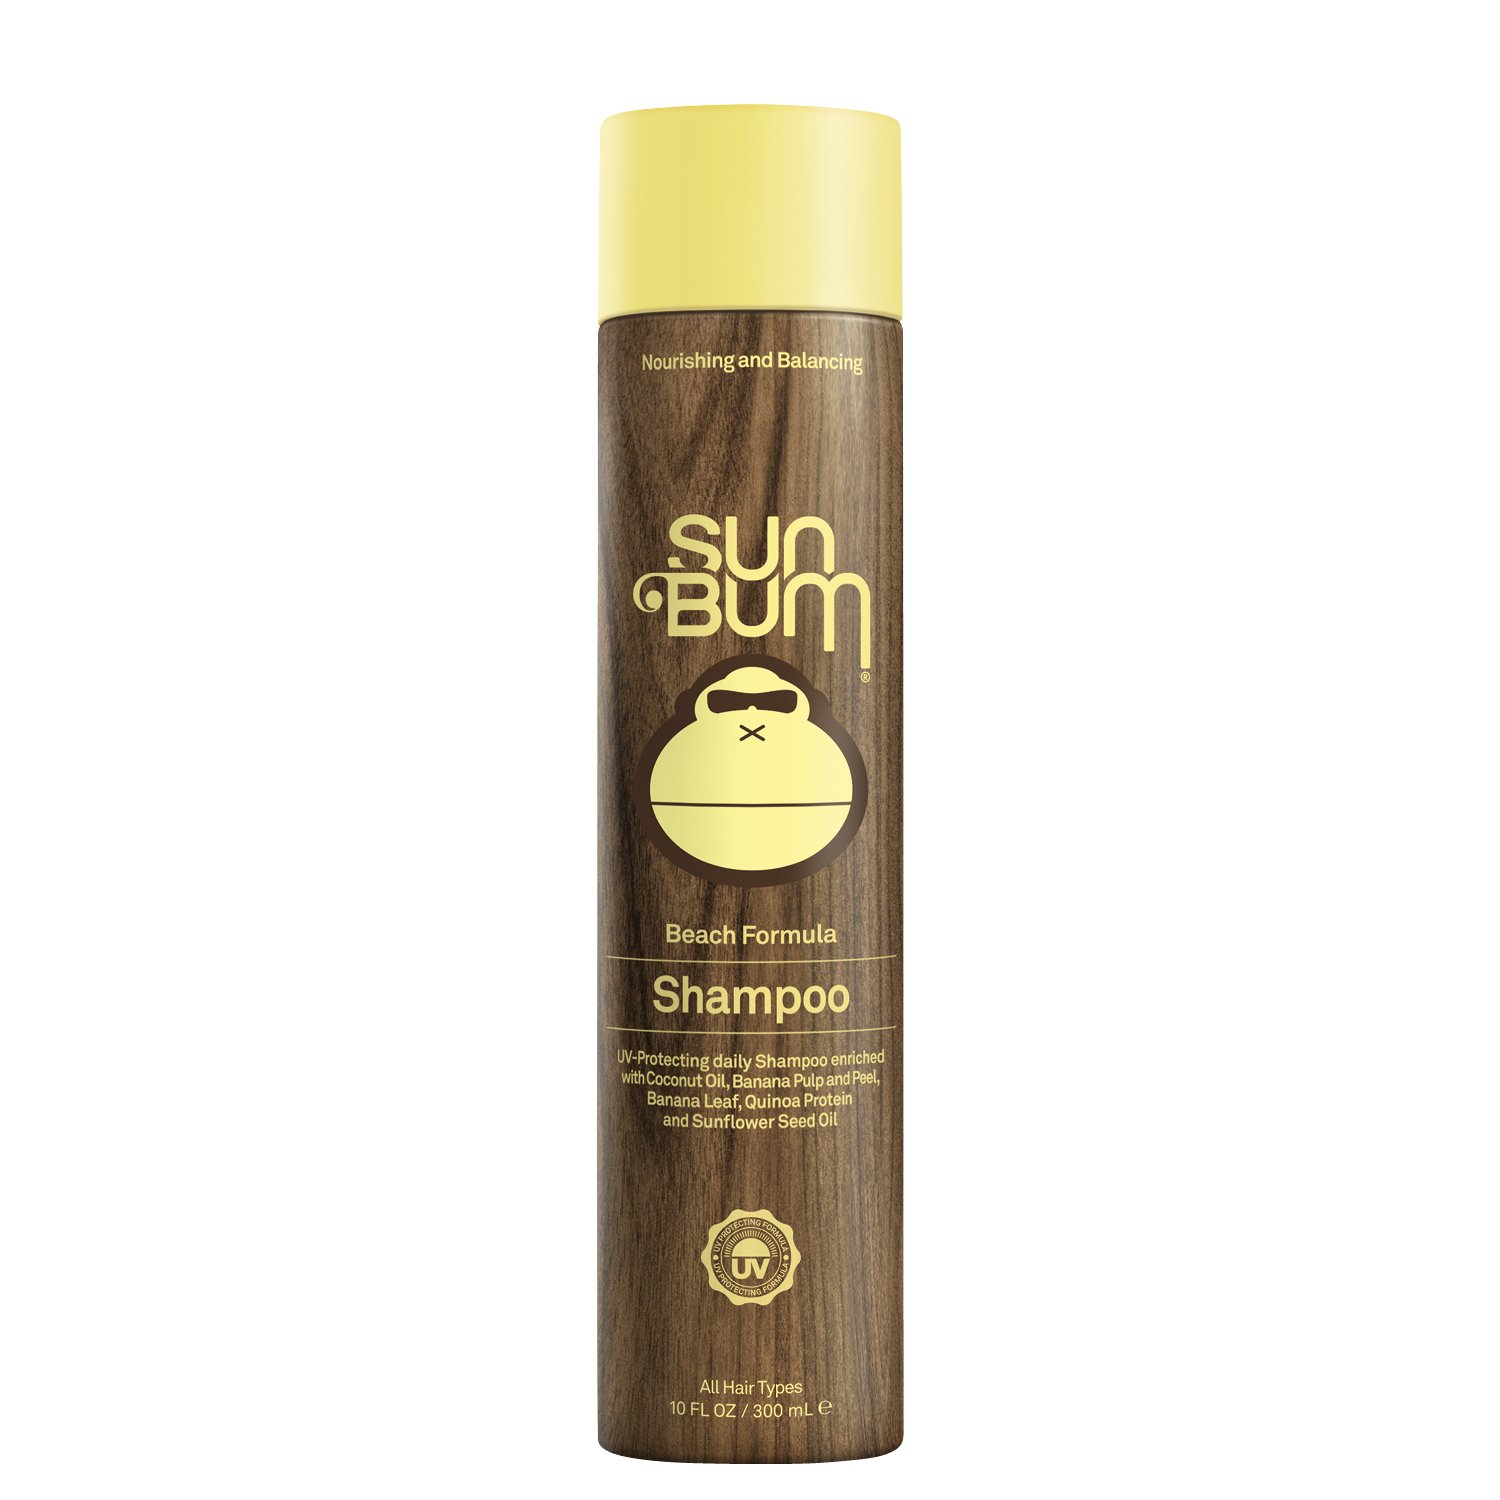 Sun Bum Beach Formula Revitalizing Shampoo, 10 oz. Bottle, 1 Count, UV Protection for Hair, Smoothing and Shine Enhancing, Paraben Free, Gluten Free, Vegan